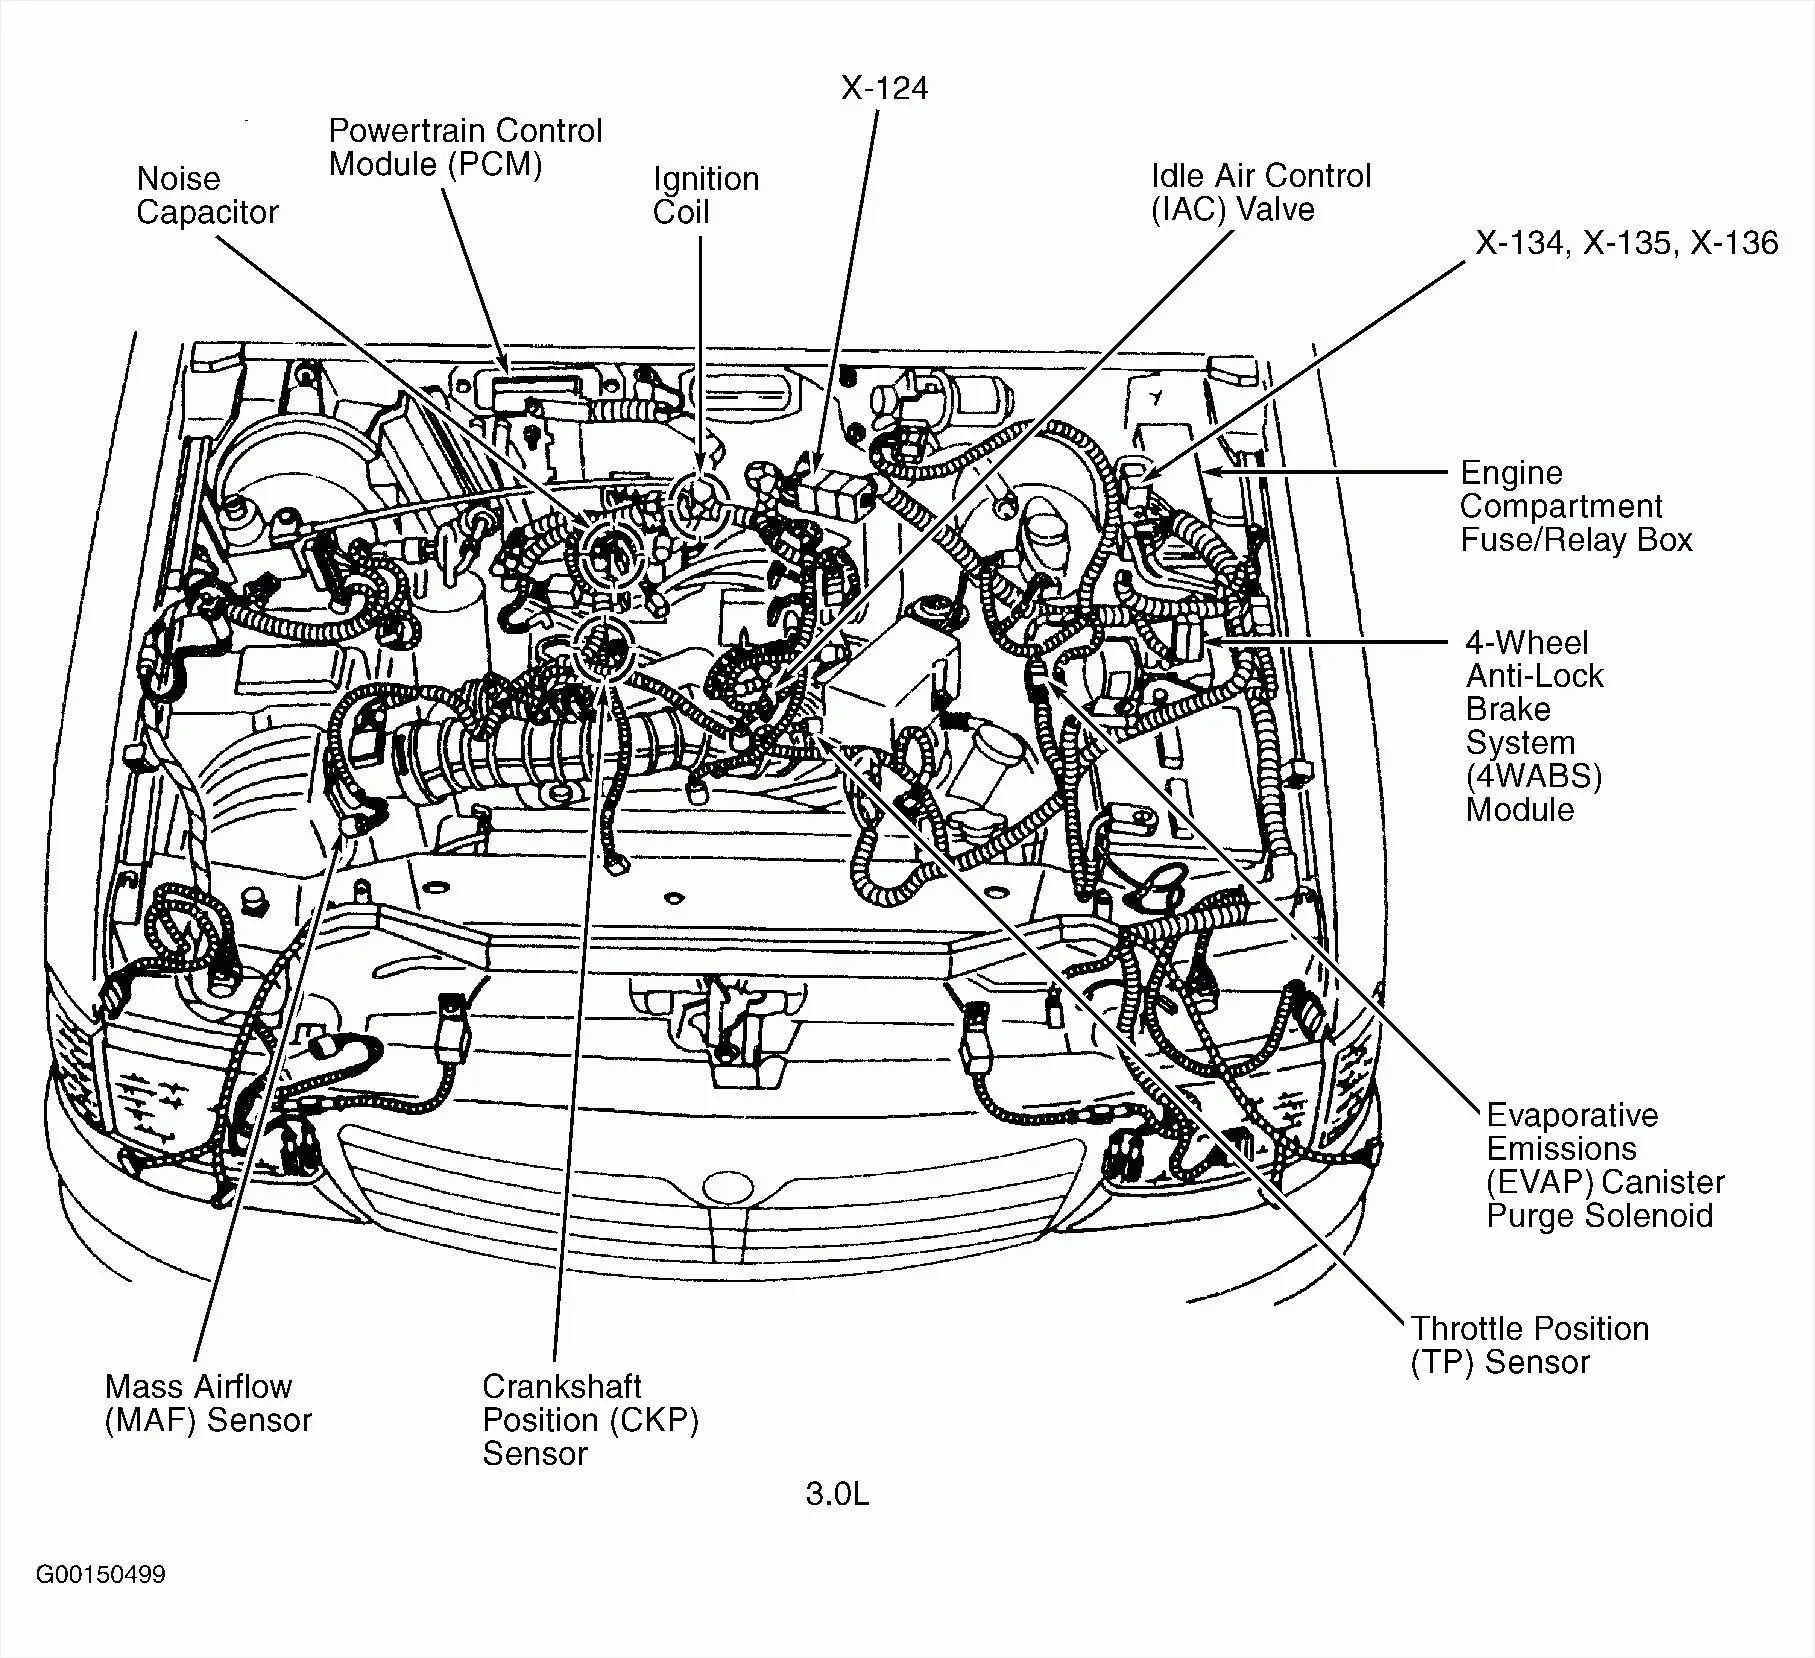 hight resolution of nissan 3 3 engine diagram wiring diagram world diagram of 1986 nissan maxima 3 0 engine